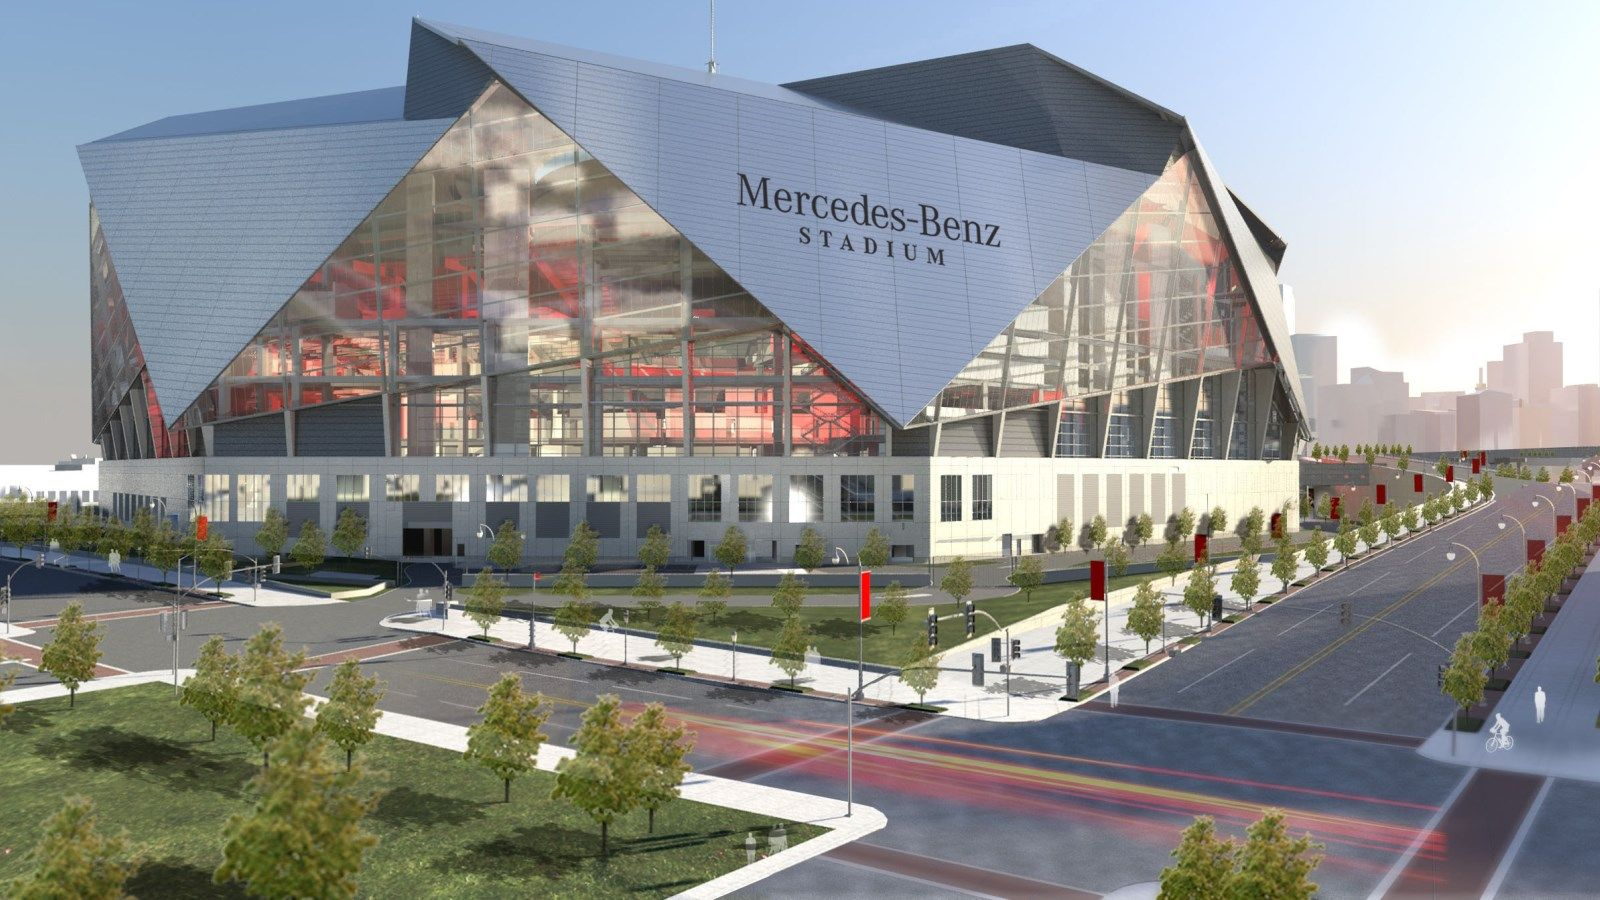 Things to do in atlanta ga w atlanta downtown for Hotel near mercedes benz stadium atlanta